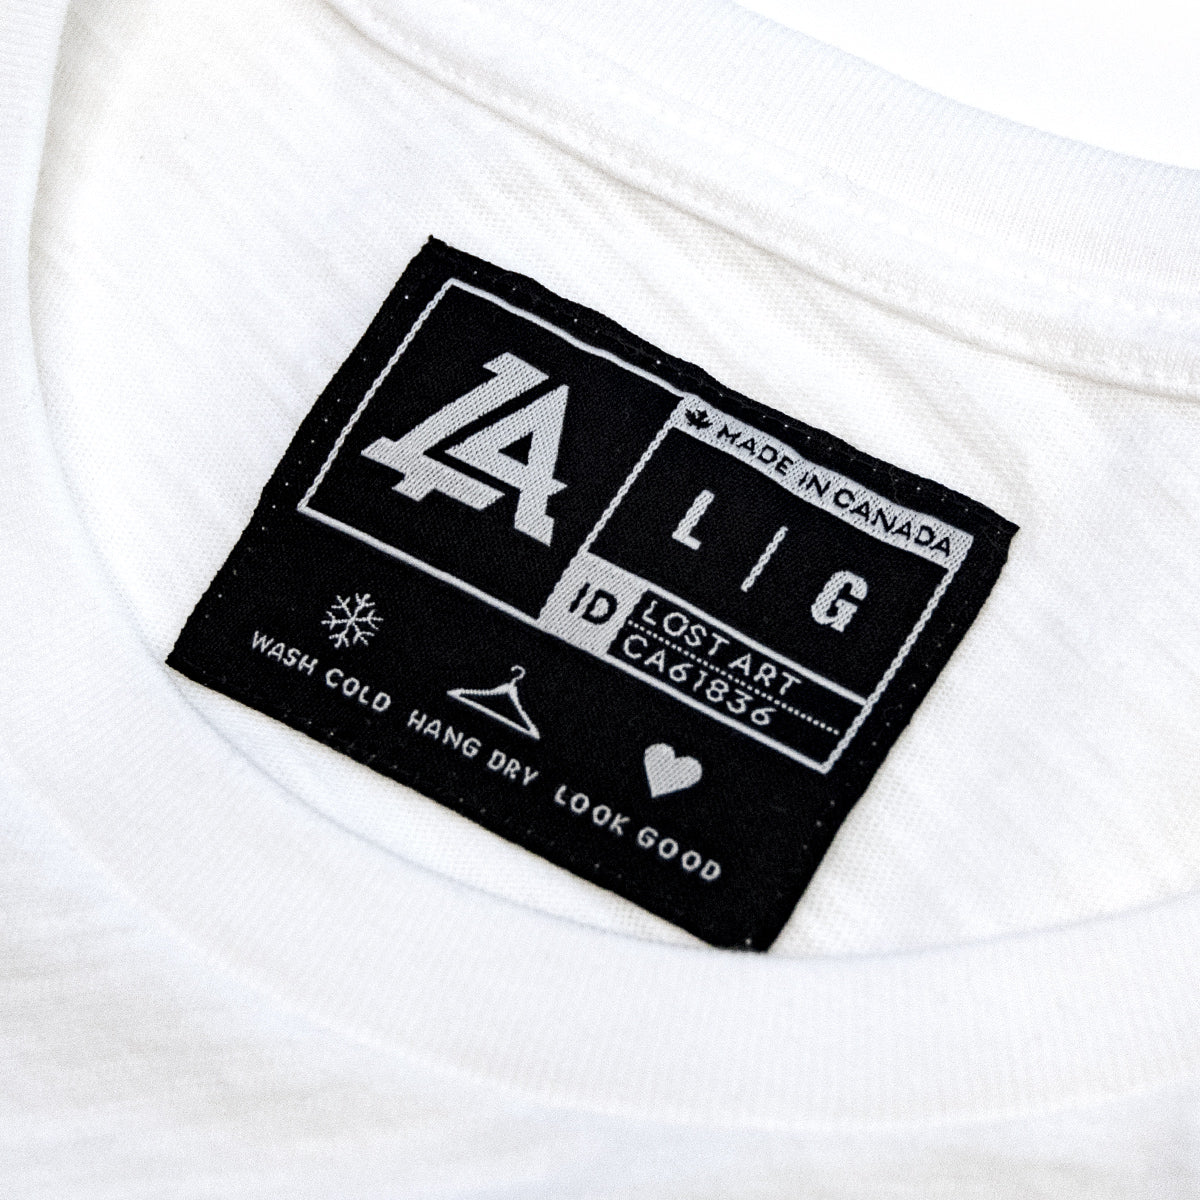 Lost Art Canada - white and black graffiti vandal tee inside tag view